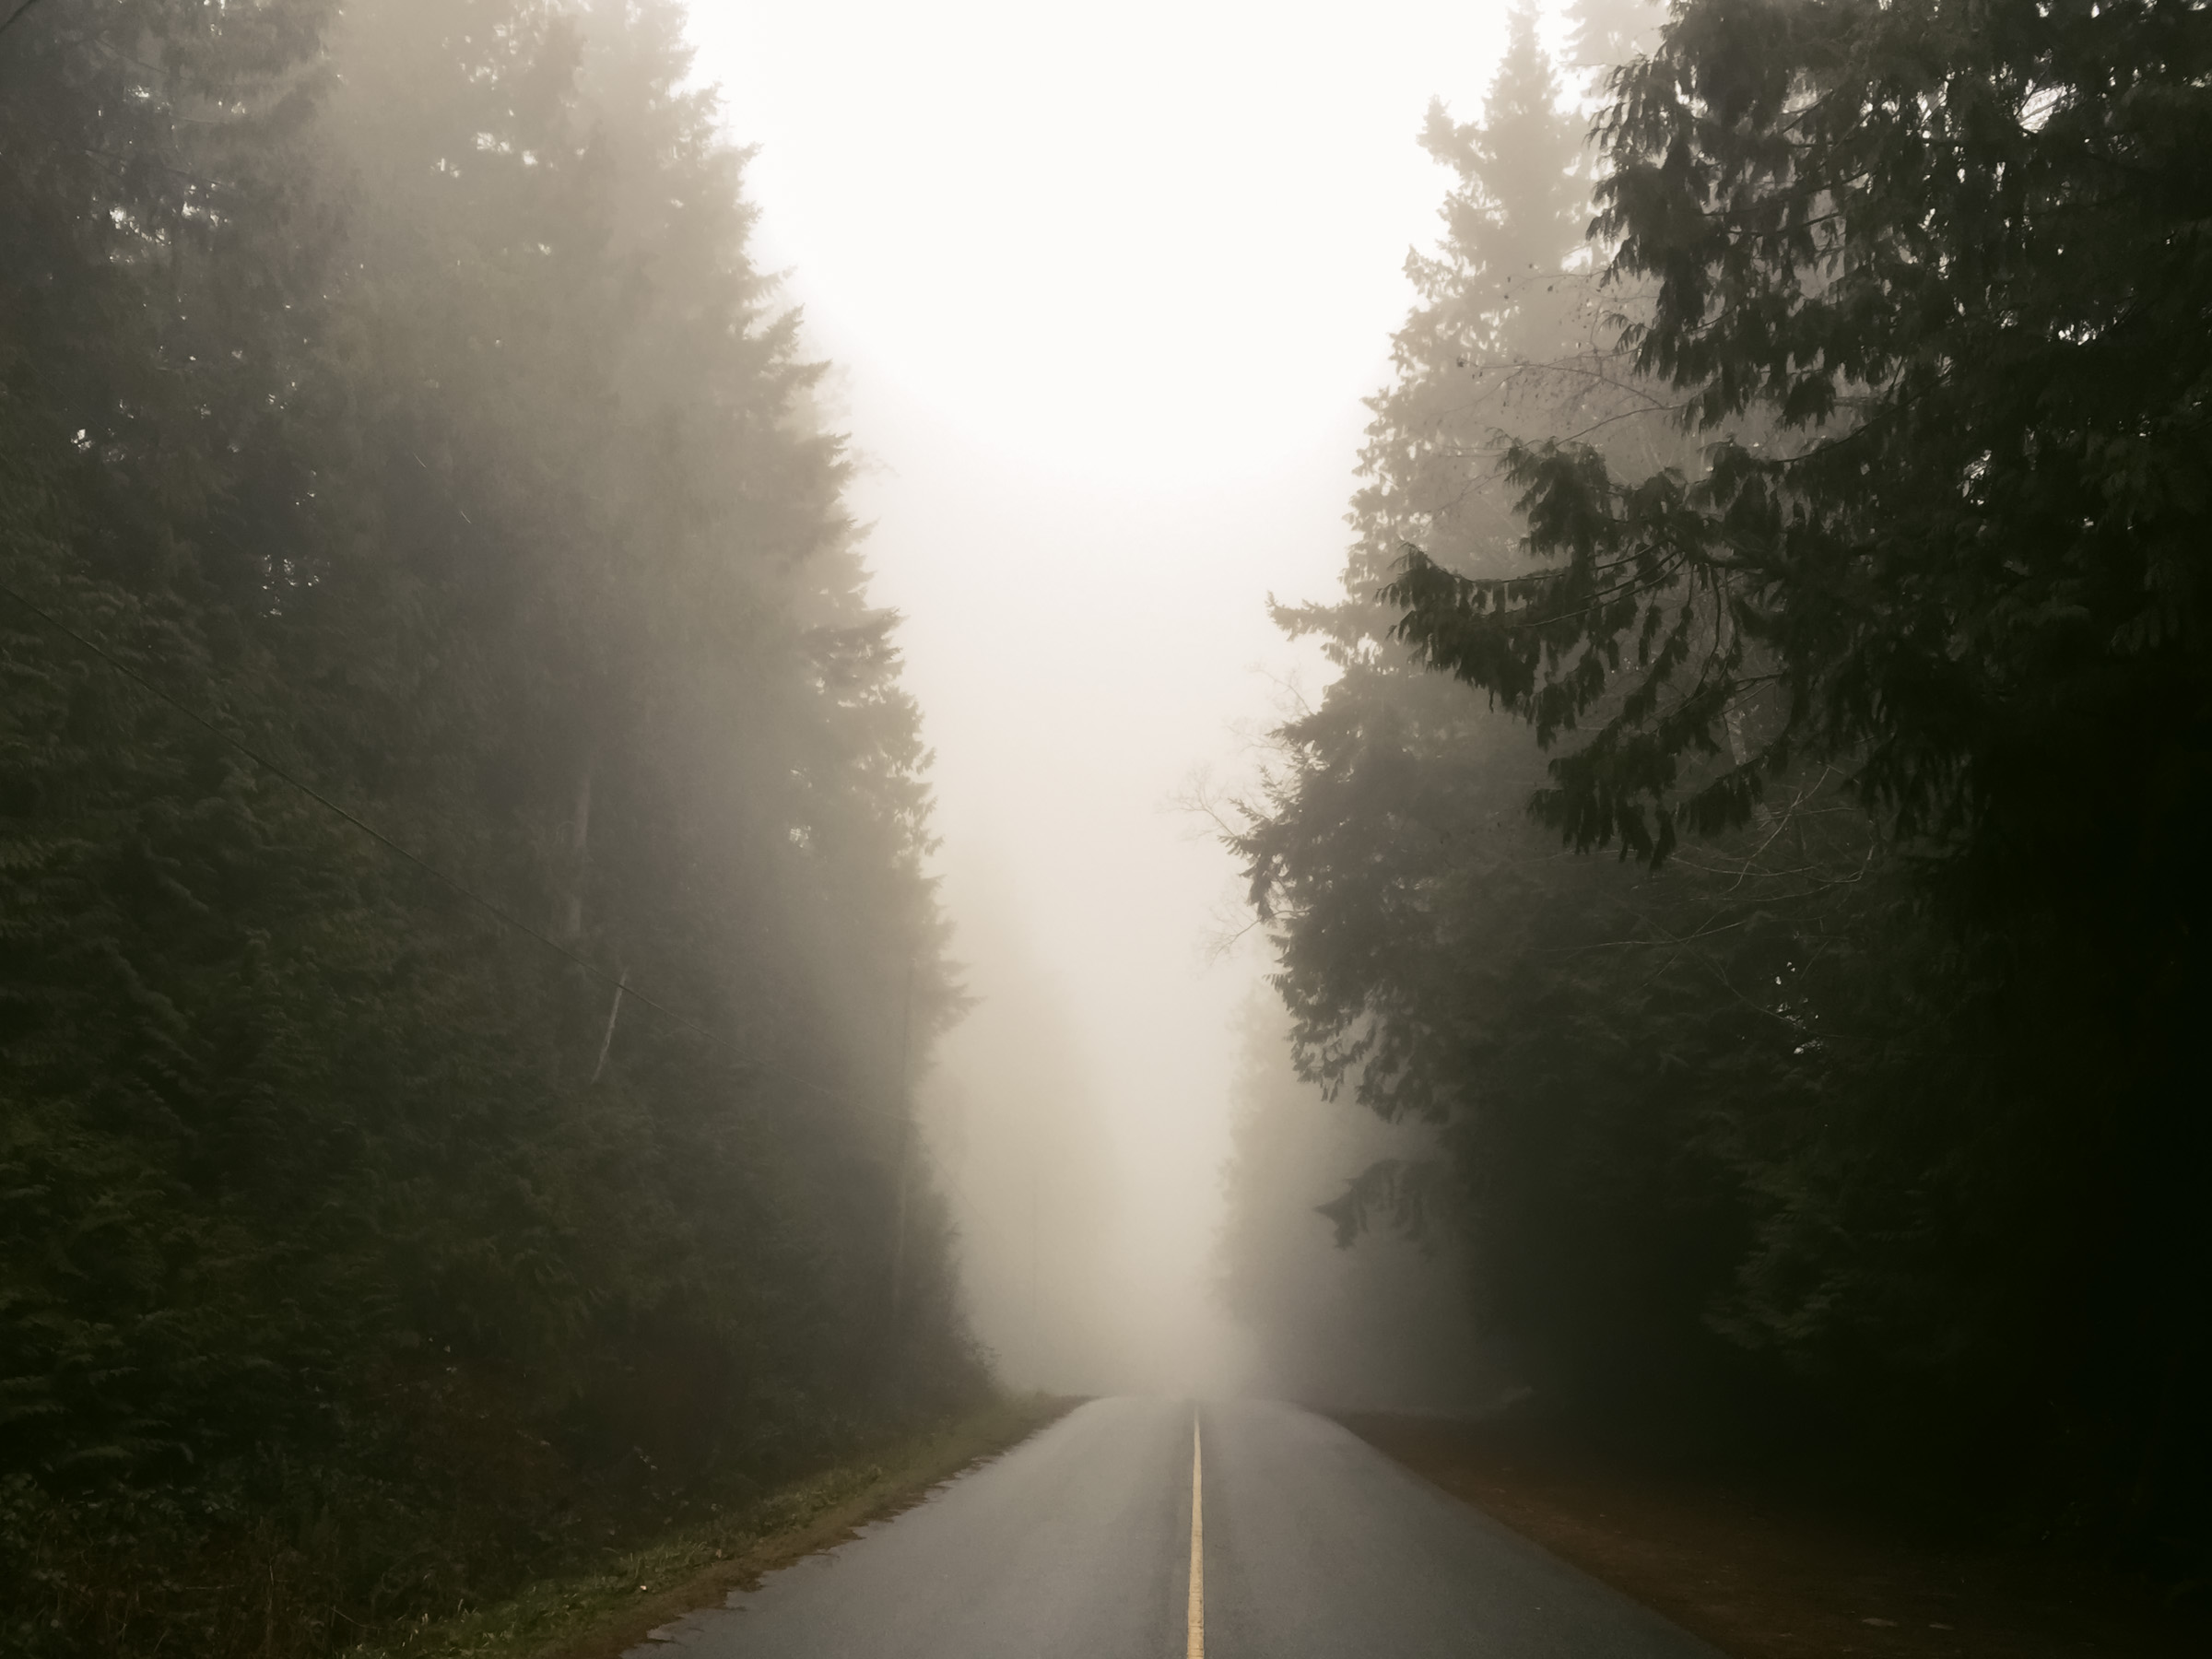 foggy road photo by me.